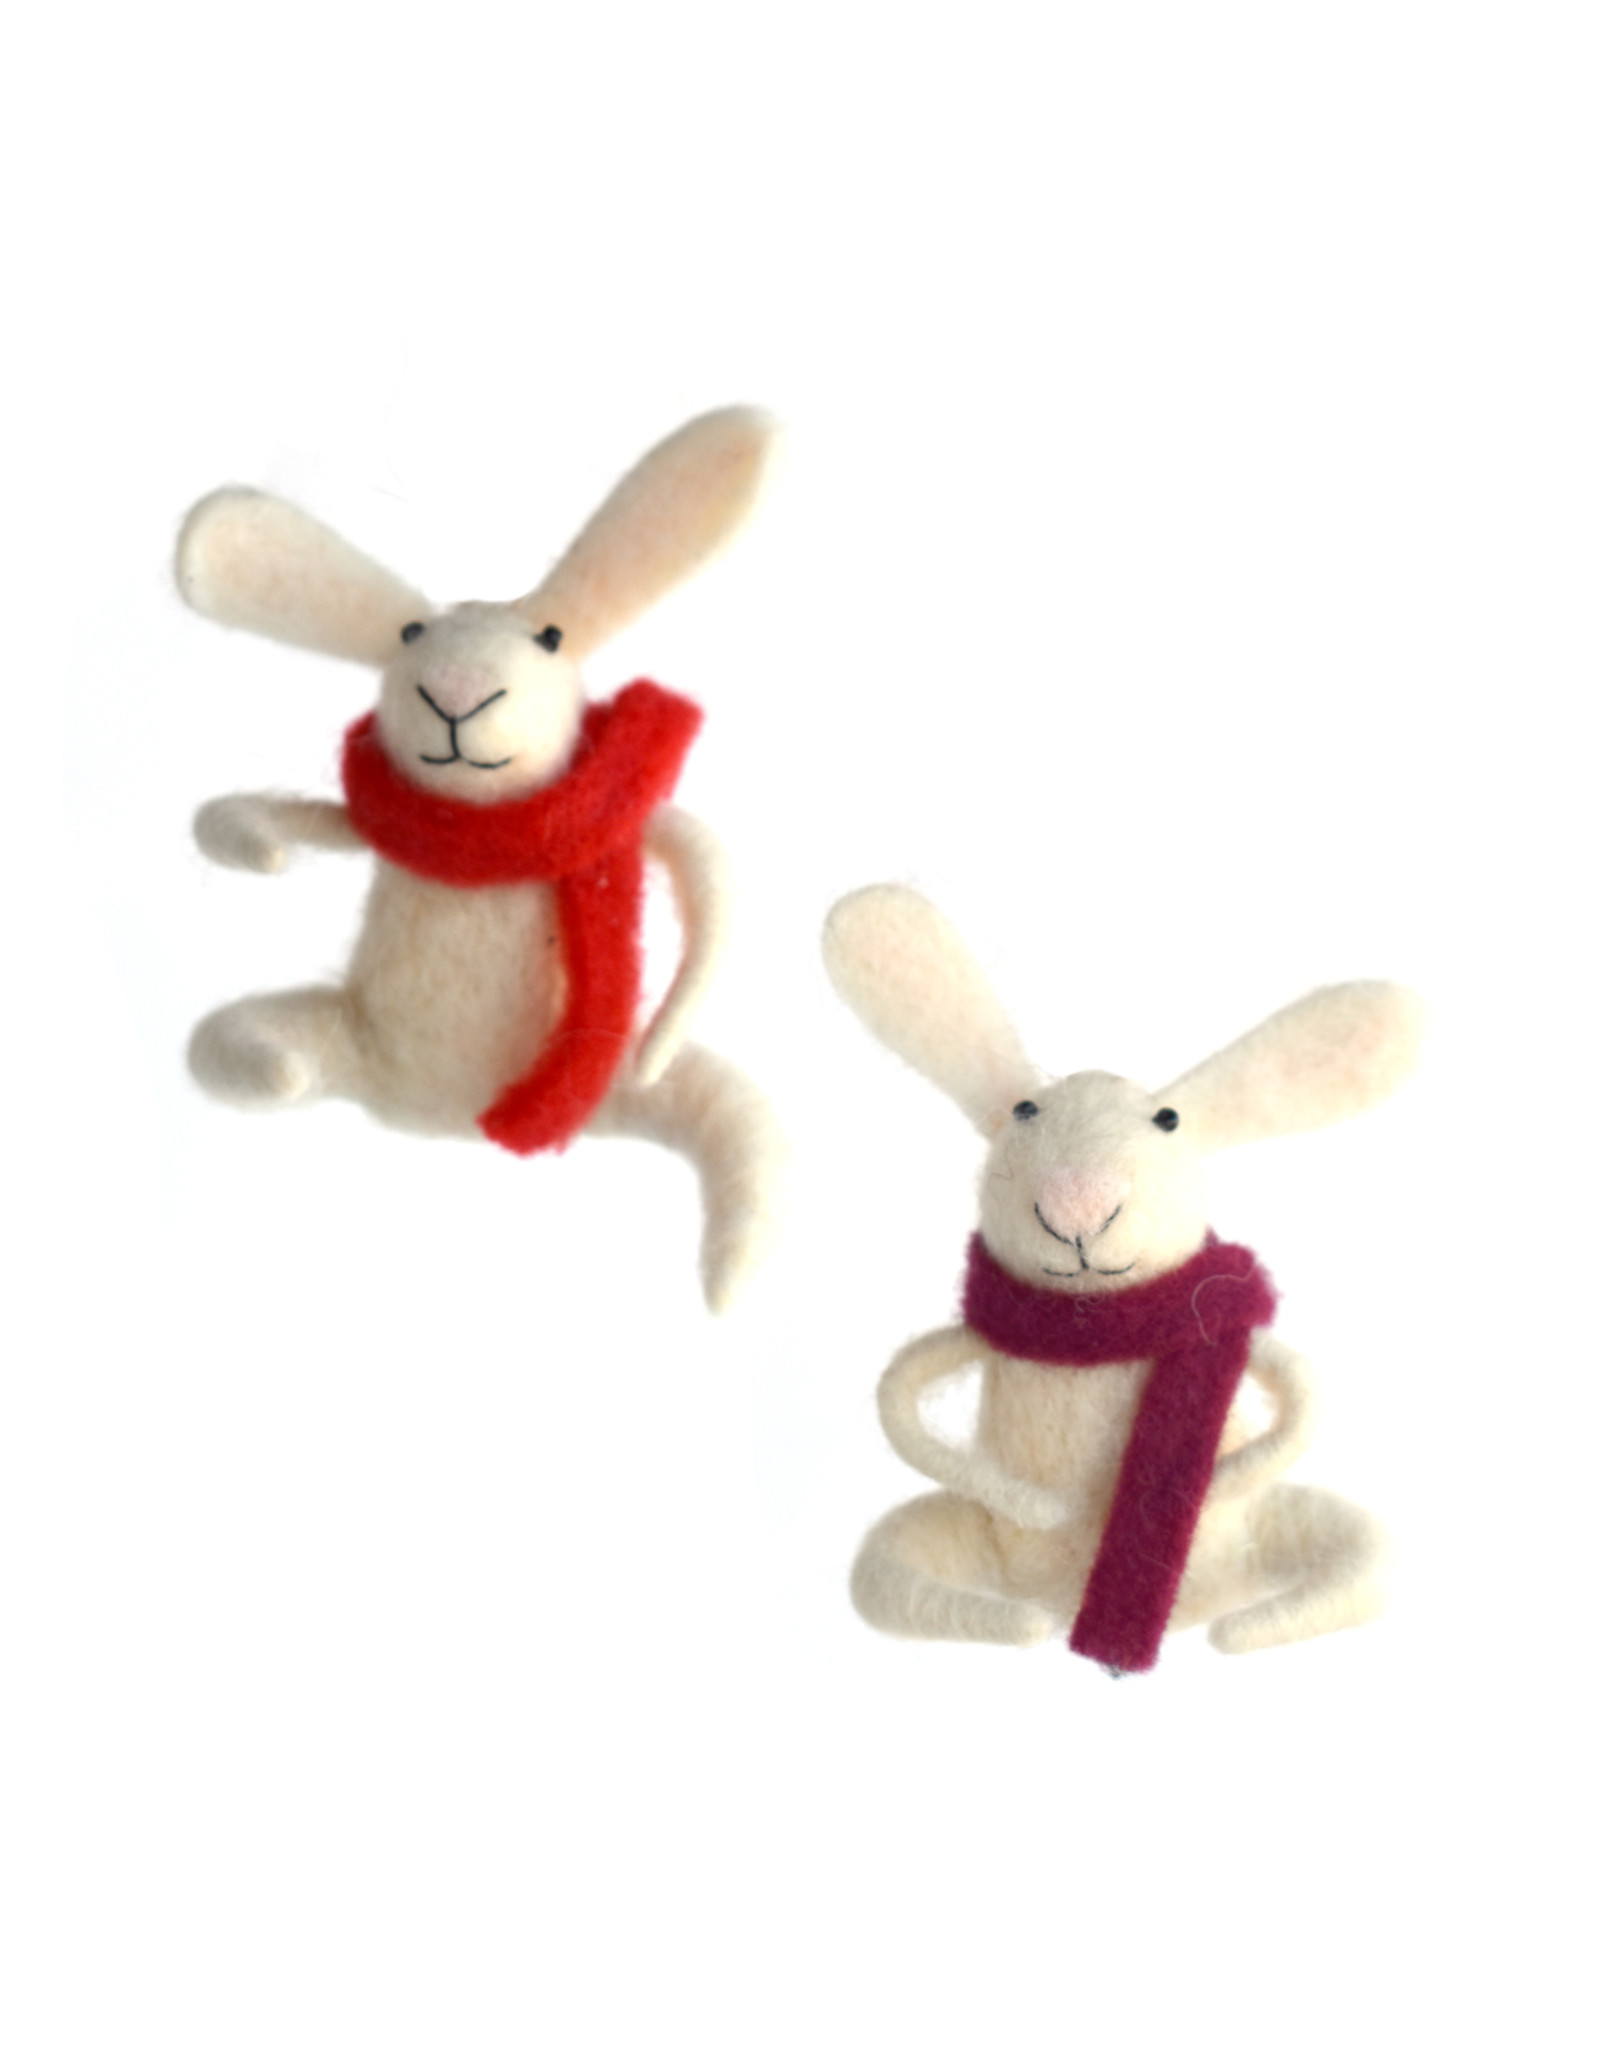 Little Bunny With Scarf Ornament (assorted)